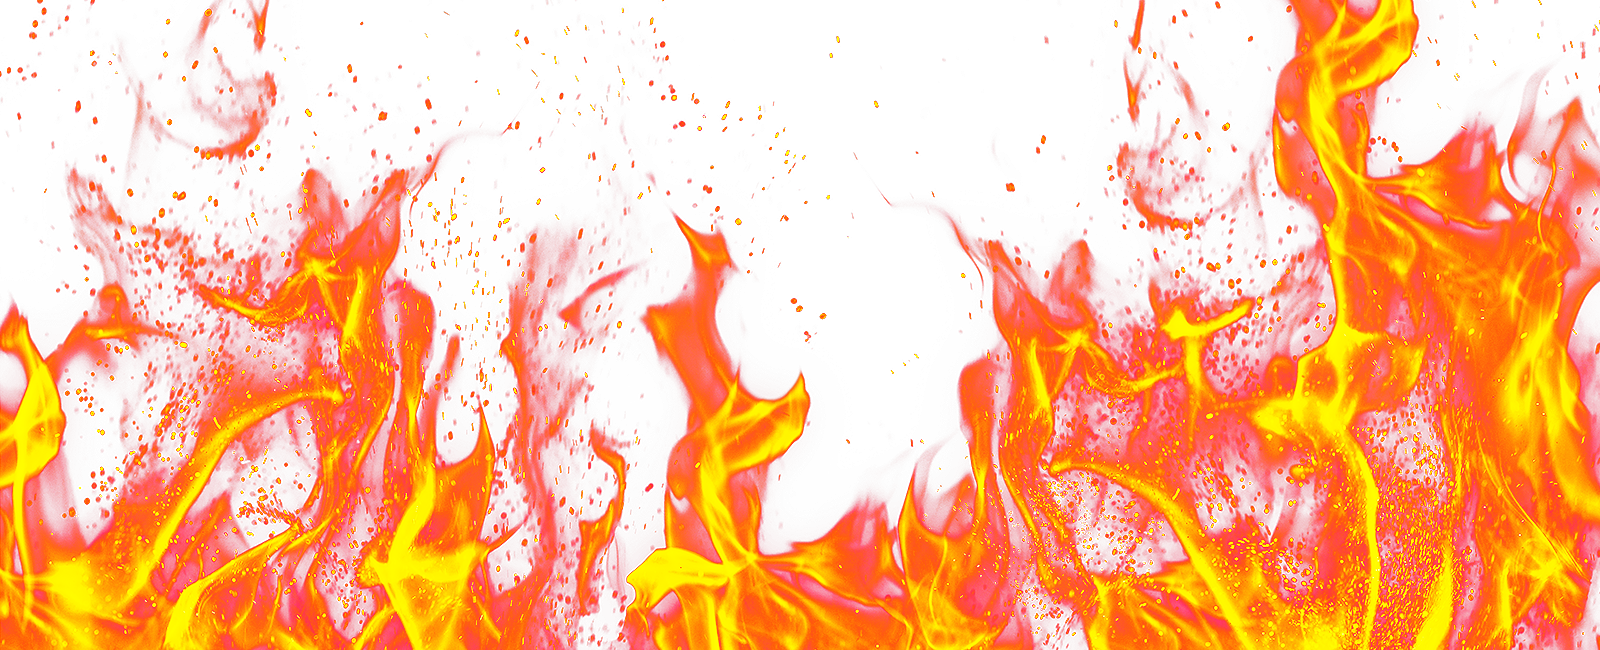 Free house fire clipart picture free library Fire clipart exothermic reaction ~ Frames ~ Illustrations ~ HD ... picture free library